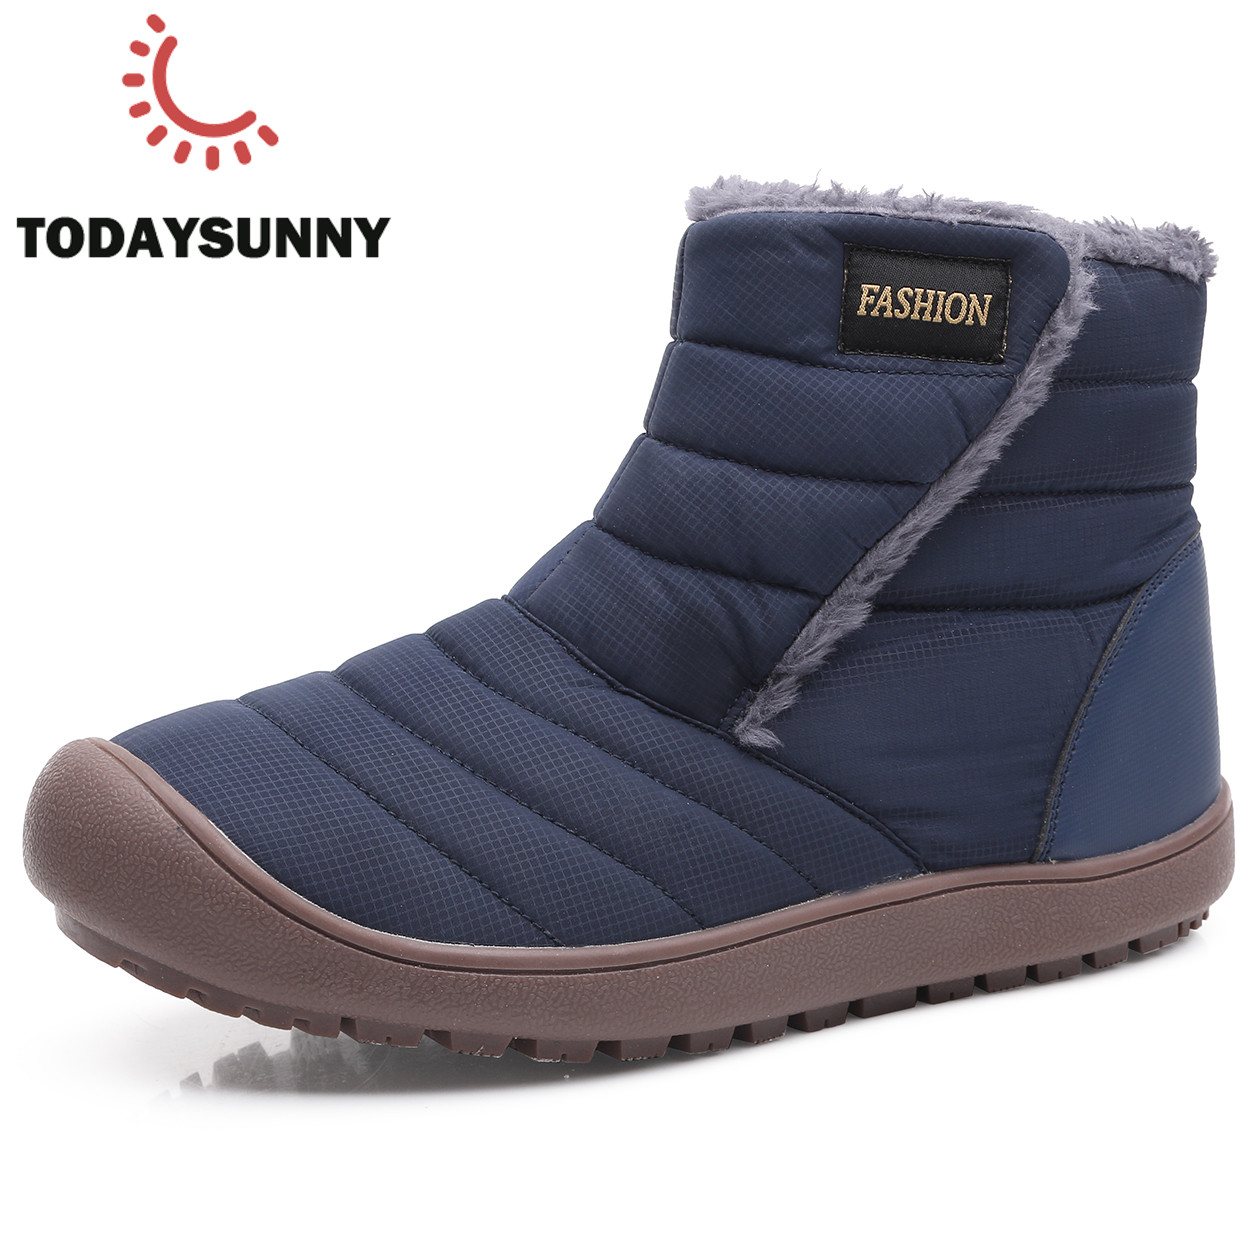 Men Winter Waterproof Snow Boots Couple Warm Fur Plush Ankle Boots Unisex Wear-Resistant Boots Men Winter Shoes Big Size 36-46